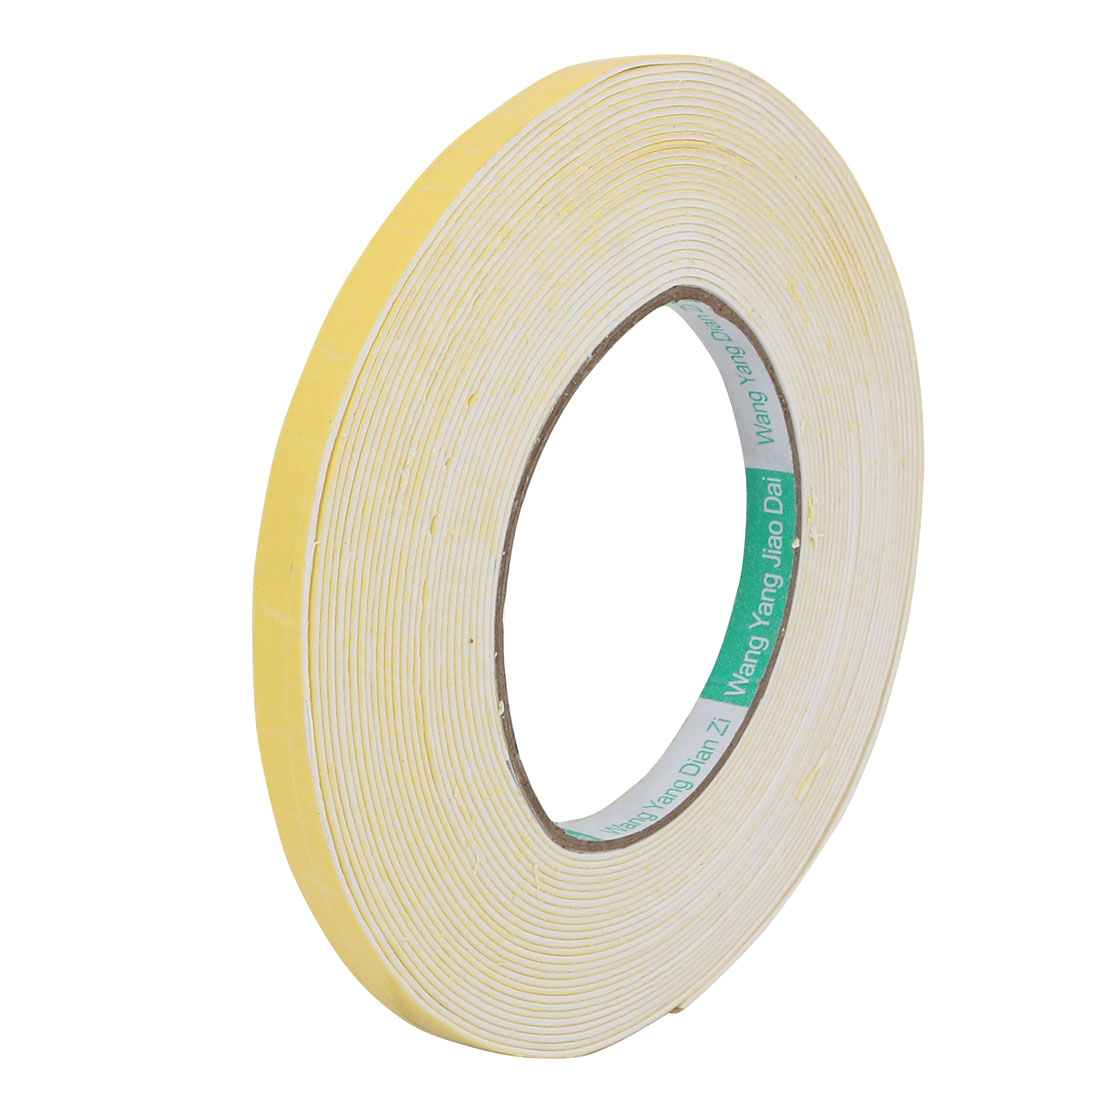 10mm Width 1mm Thickness Single-Side Sealed Sponge Tape Red 10M Length Yellow